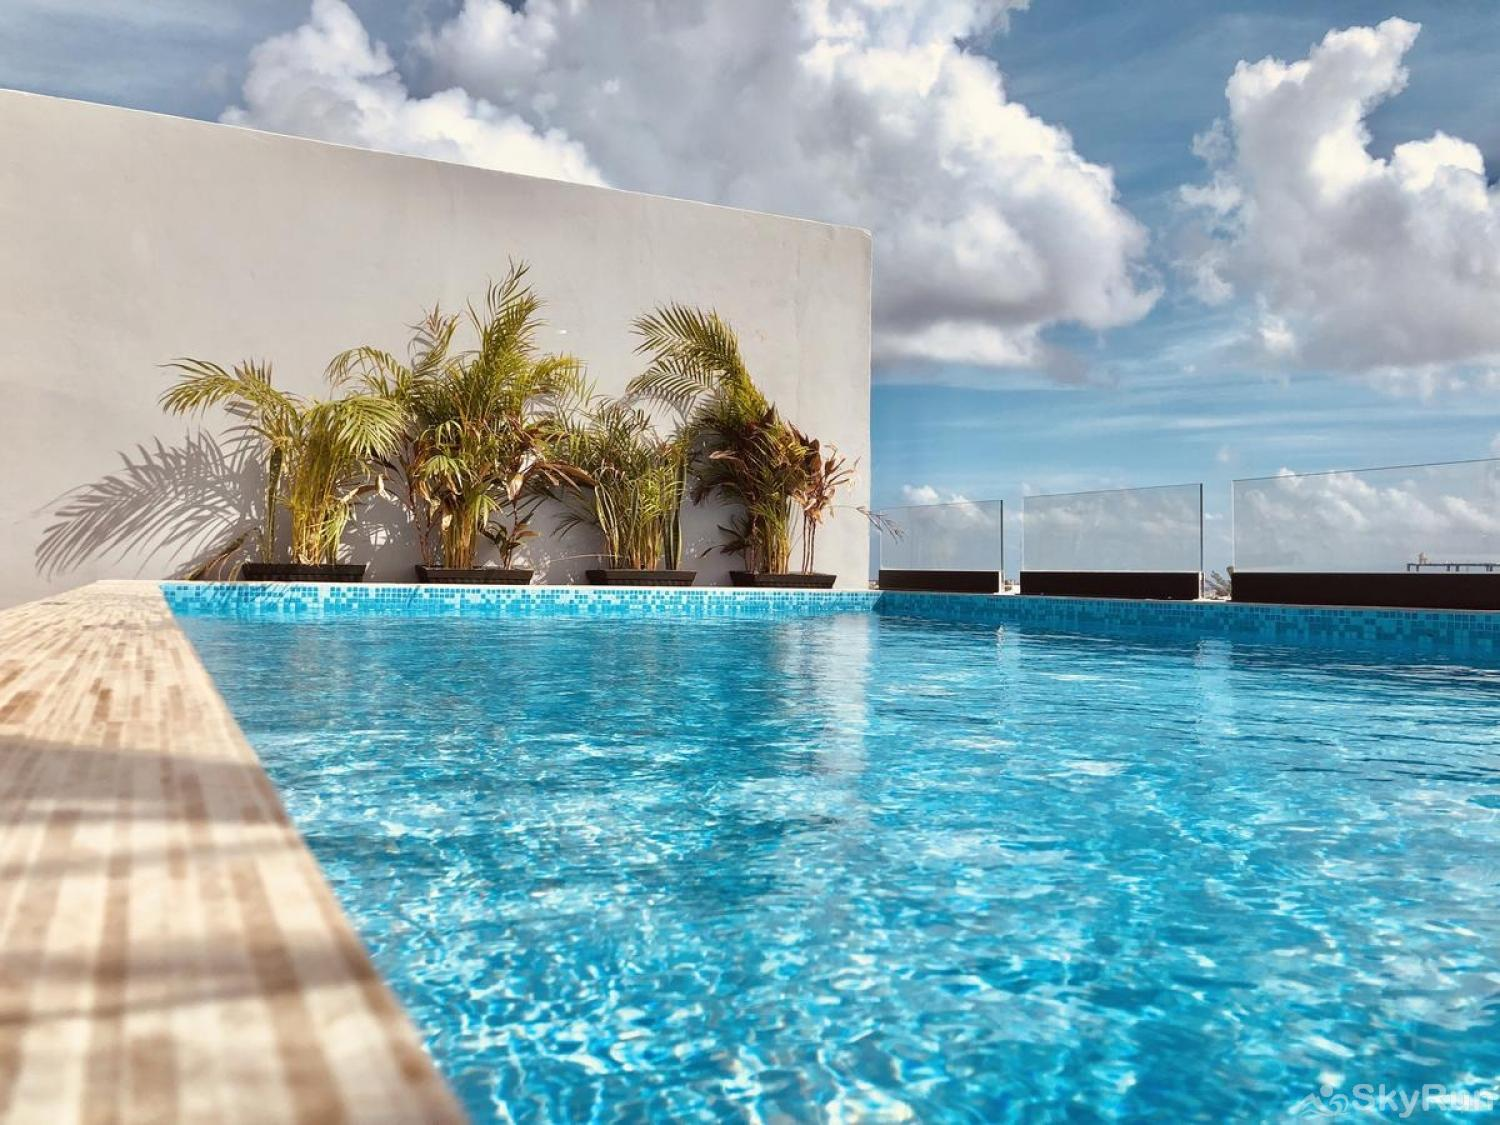 New PRME LoFt 303 Downtown Playa del Carmen SkyRun Luxury Condo Roof Outdoor Pool